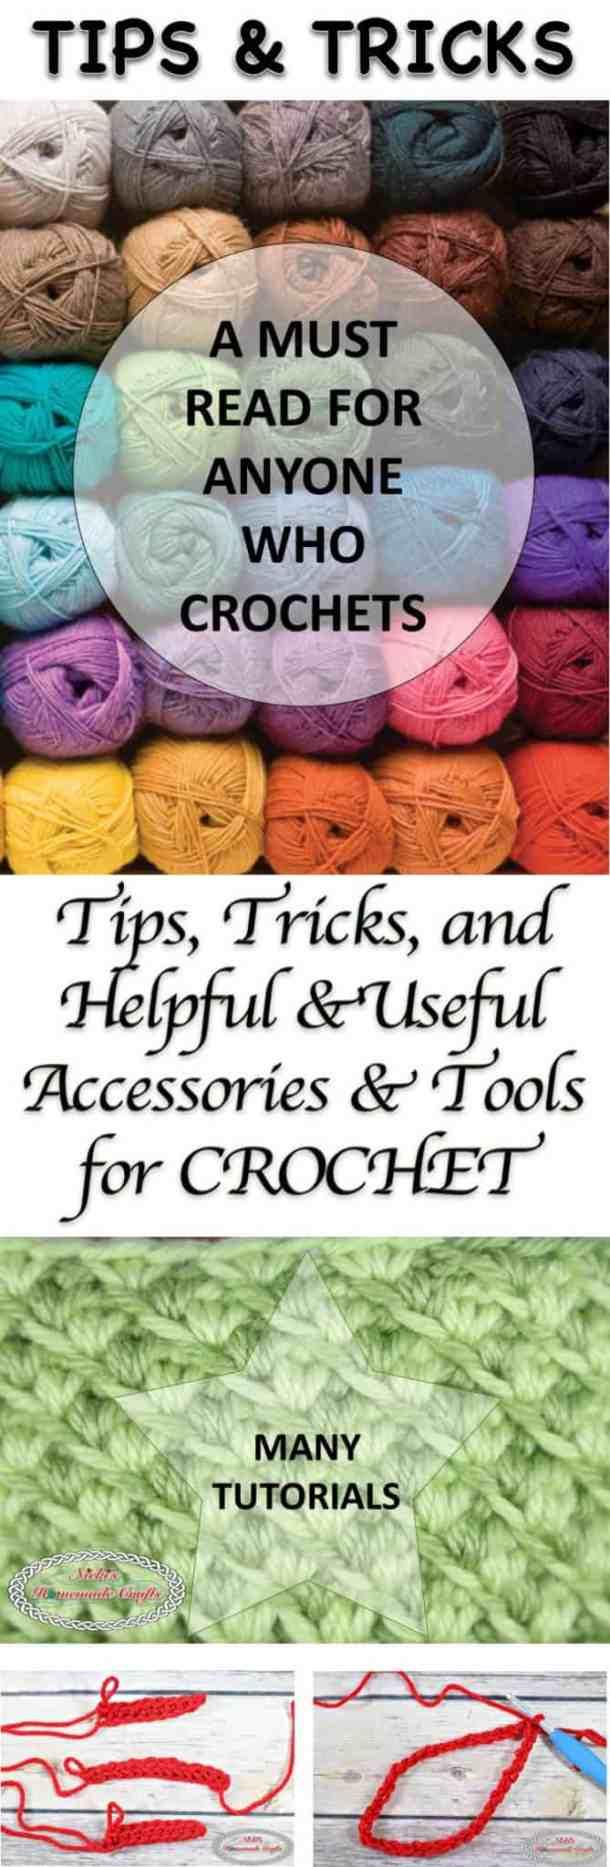 Tips Tricks And Helpful Useful Accessories Tools For Slip Knot Diagram Additionally Stitch Crochet Collection Made By